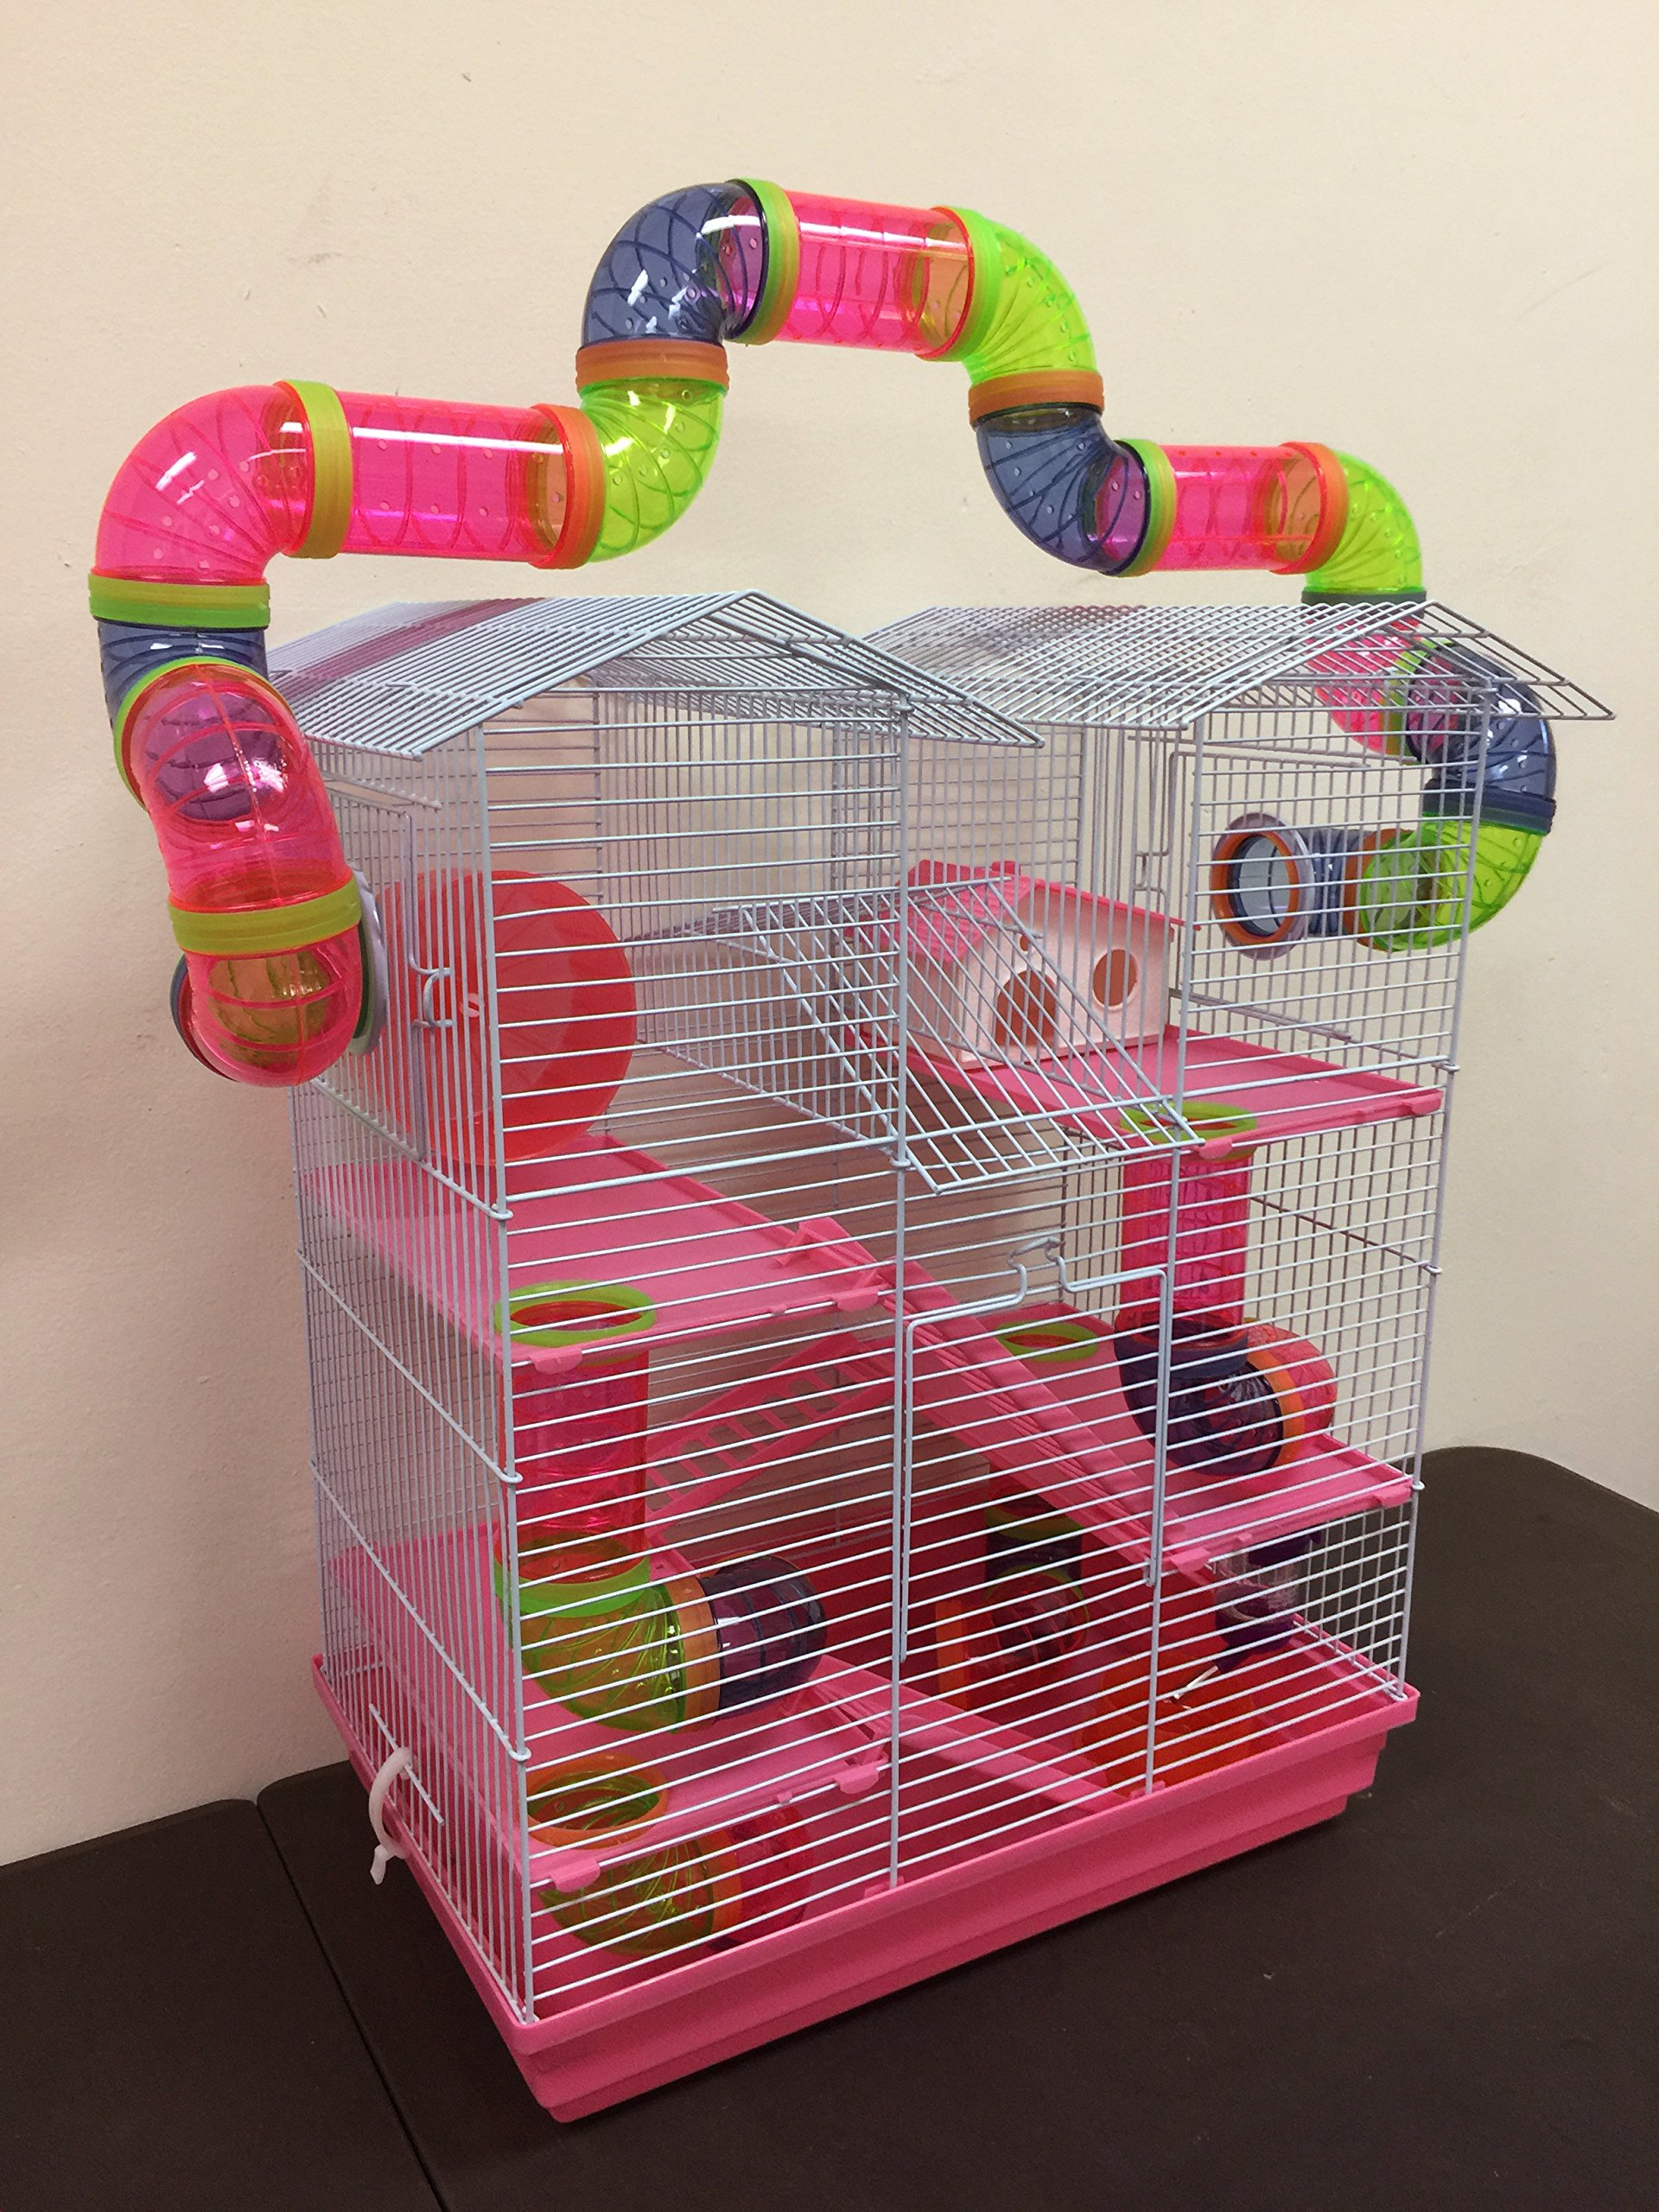 Pink 5 Level Large Cross Twin Towner Tube Tunnel Habitat Hamster Rodent Gerbil Mouse Mice Rat Cage